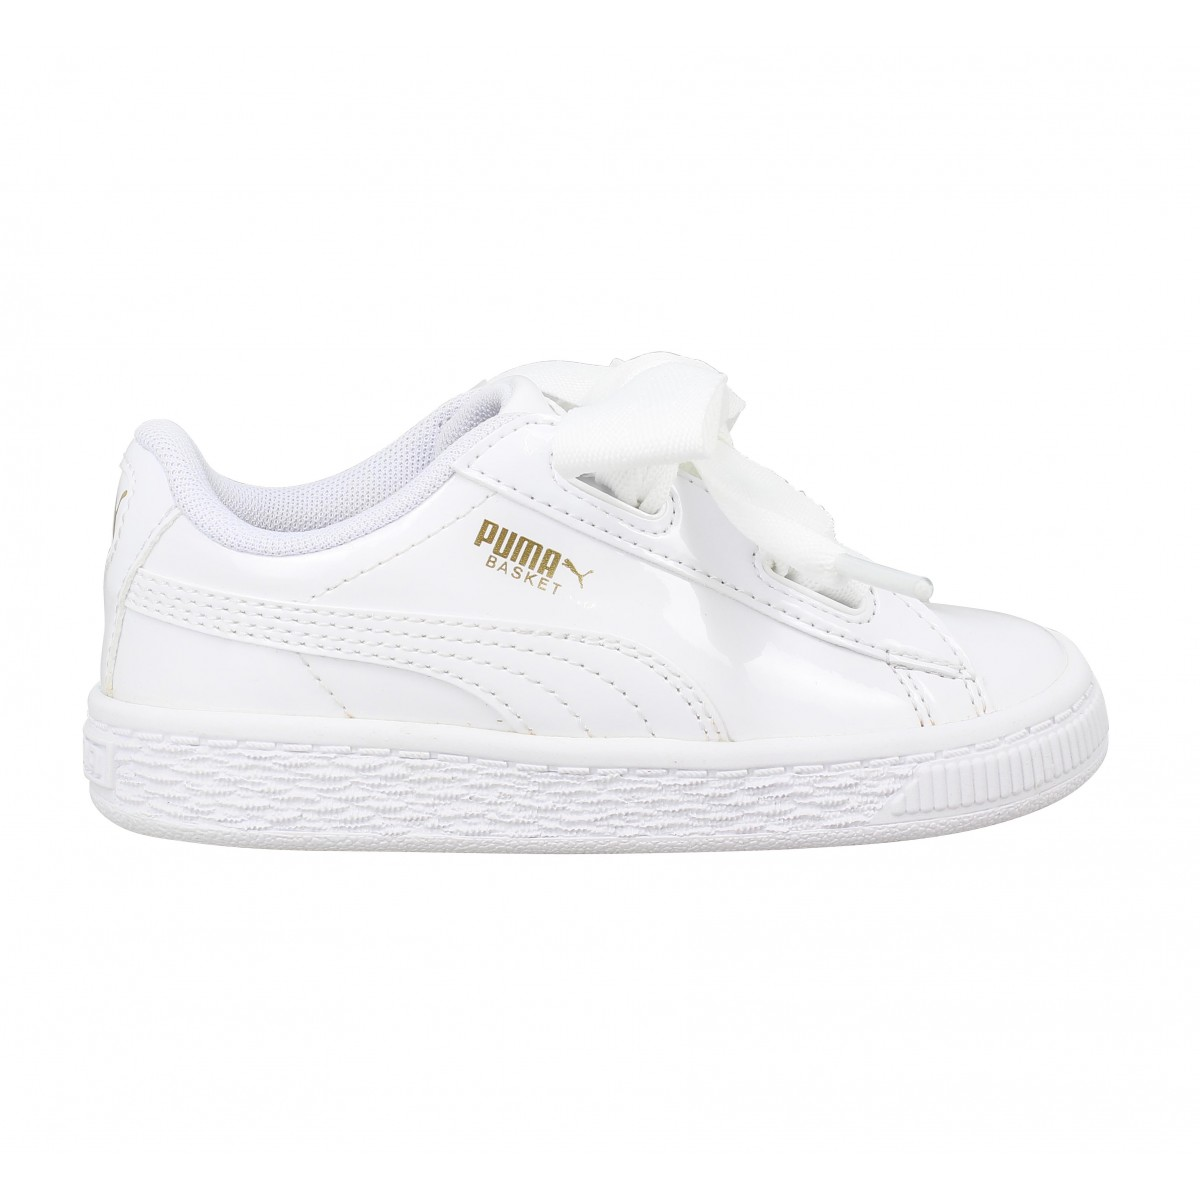 soldes puma basket heart patent enfant noir enfants fanny chaussures. Black Bedroom Furniture Sets. Home Design Ideas